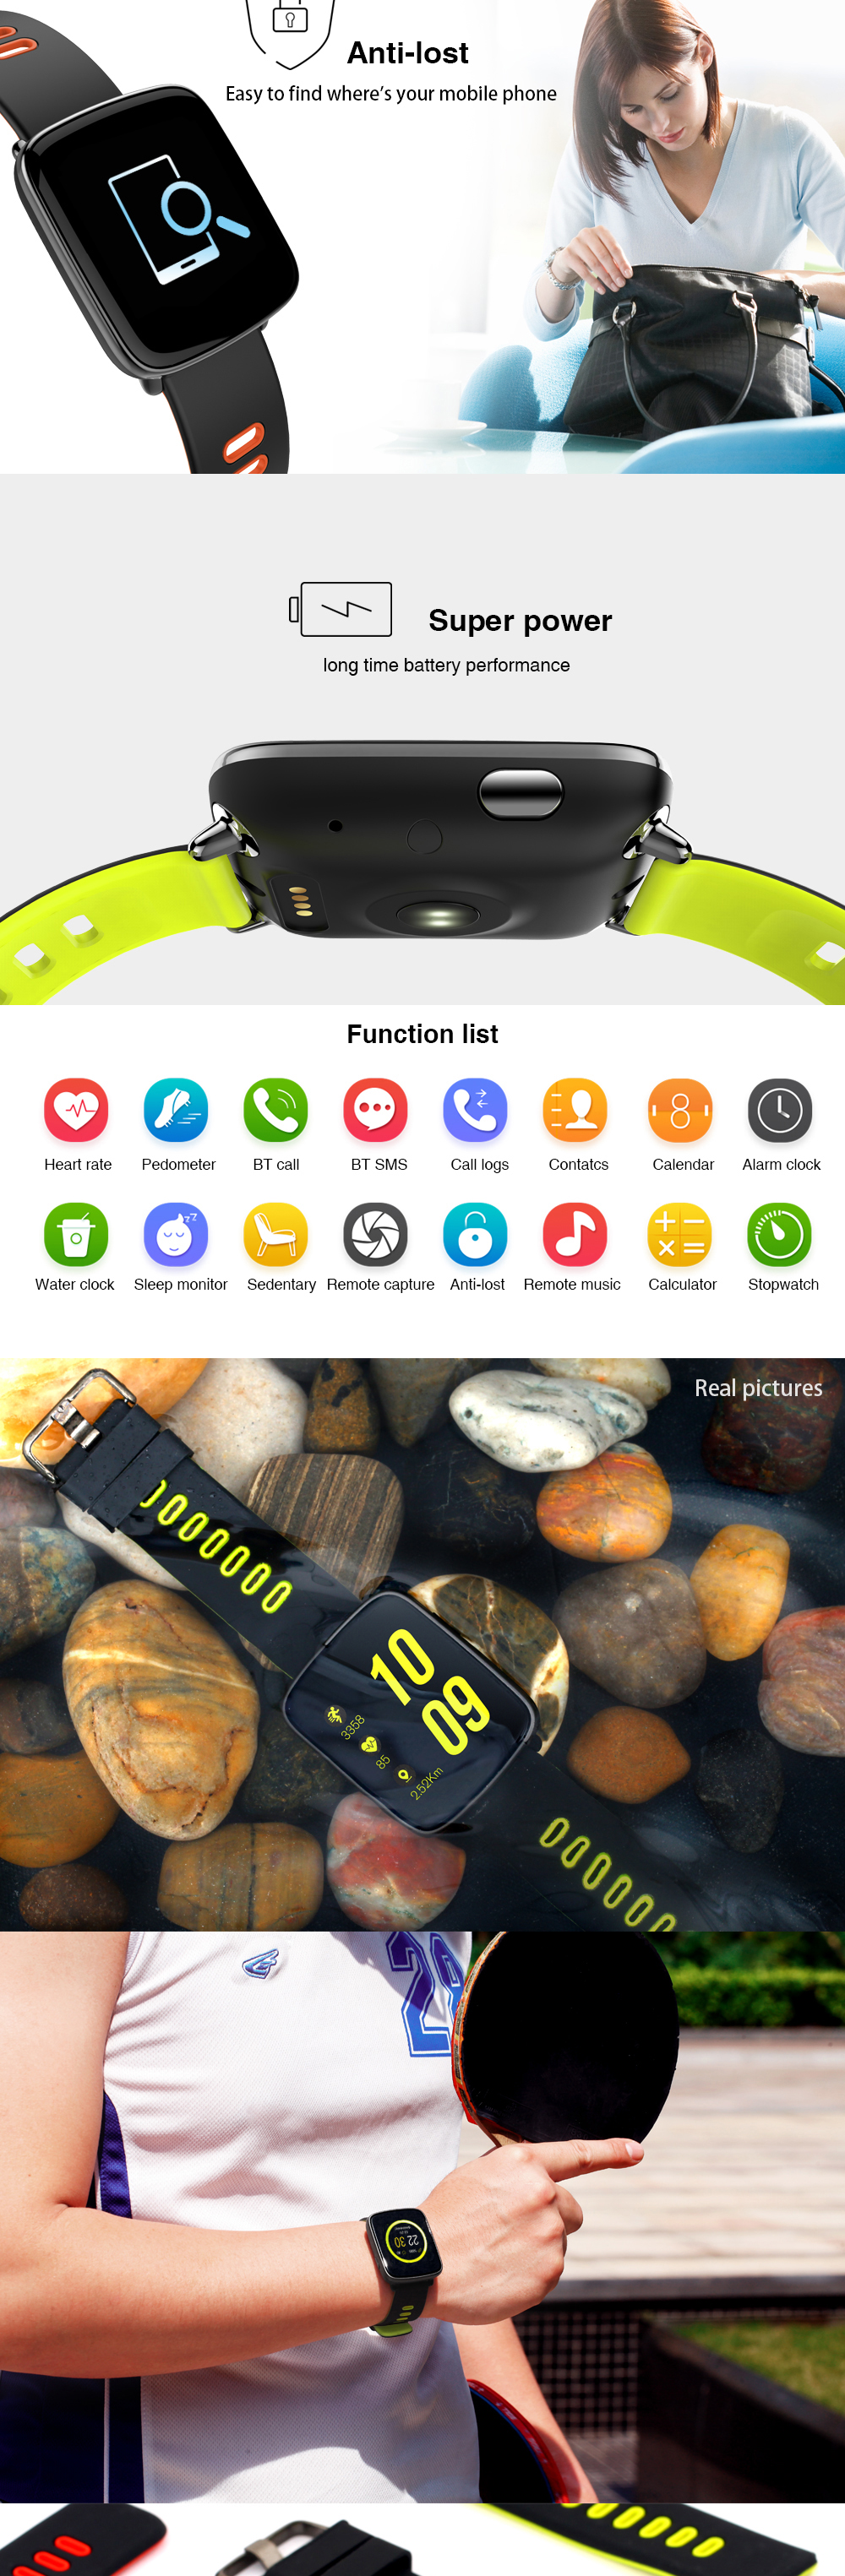 ALANTURING Bluetooth smart watch SW71 fitness activity tracker 2.5D screen sleep heart rate monitor remote control waterproof